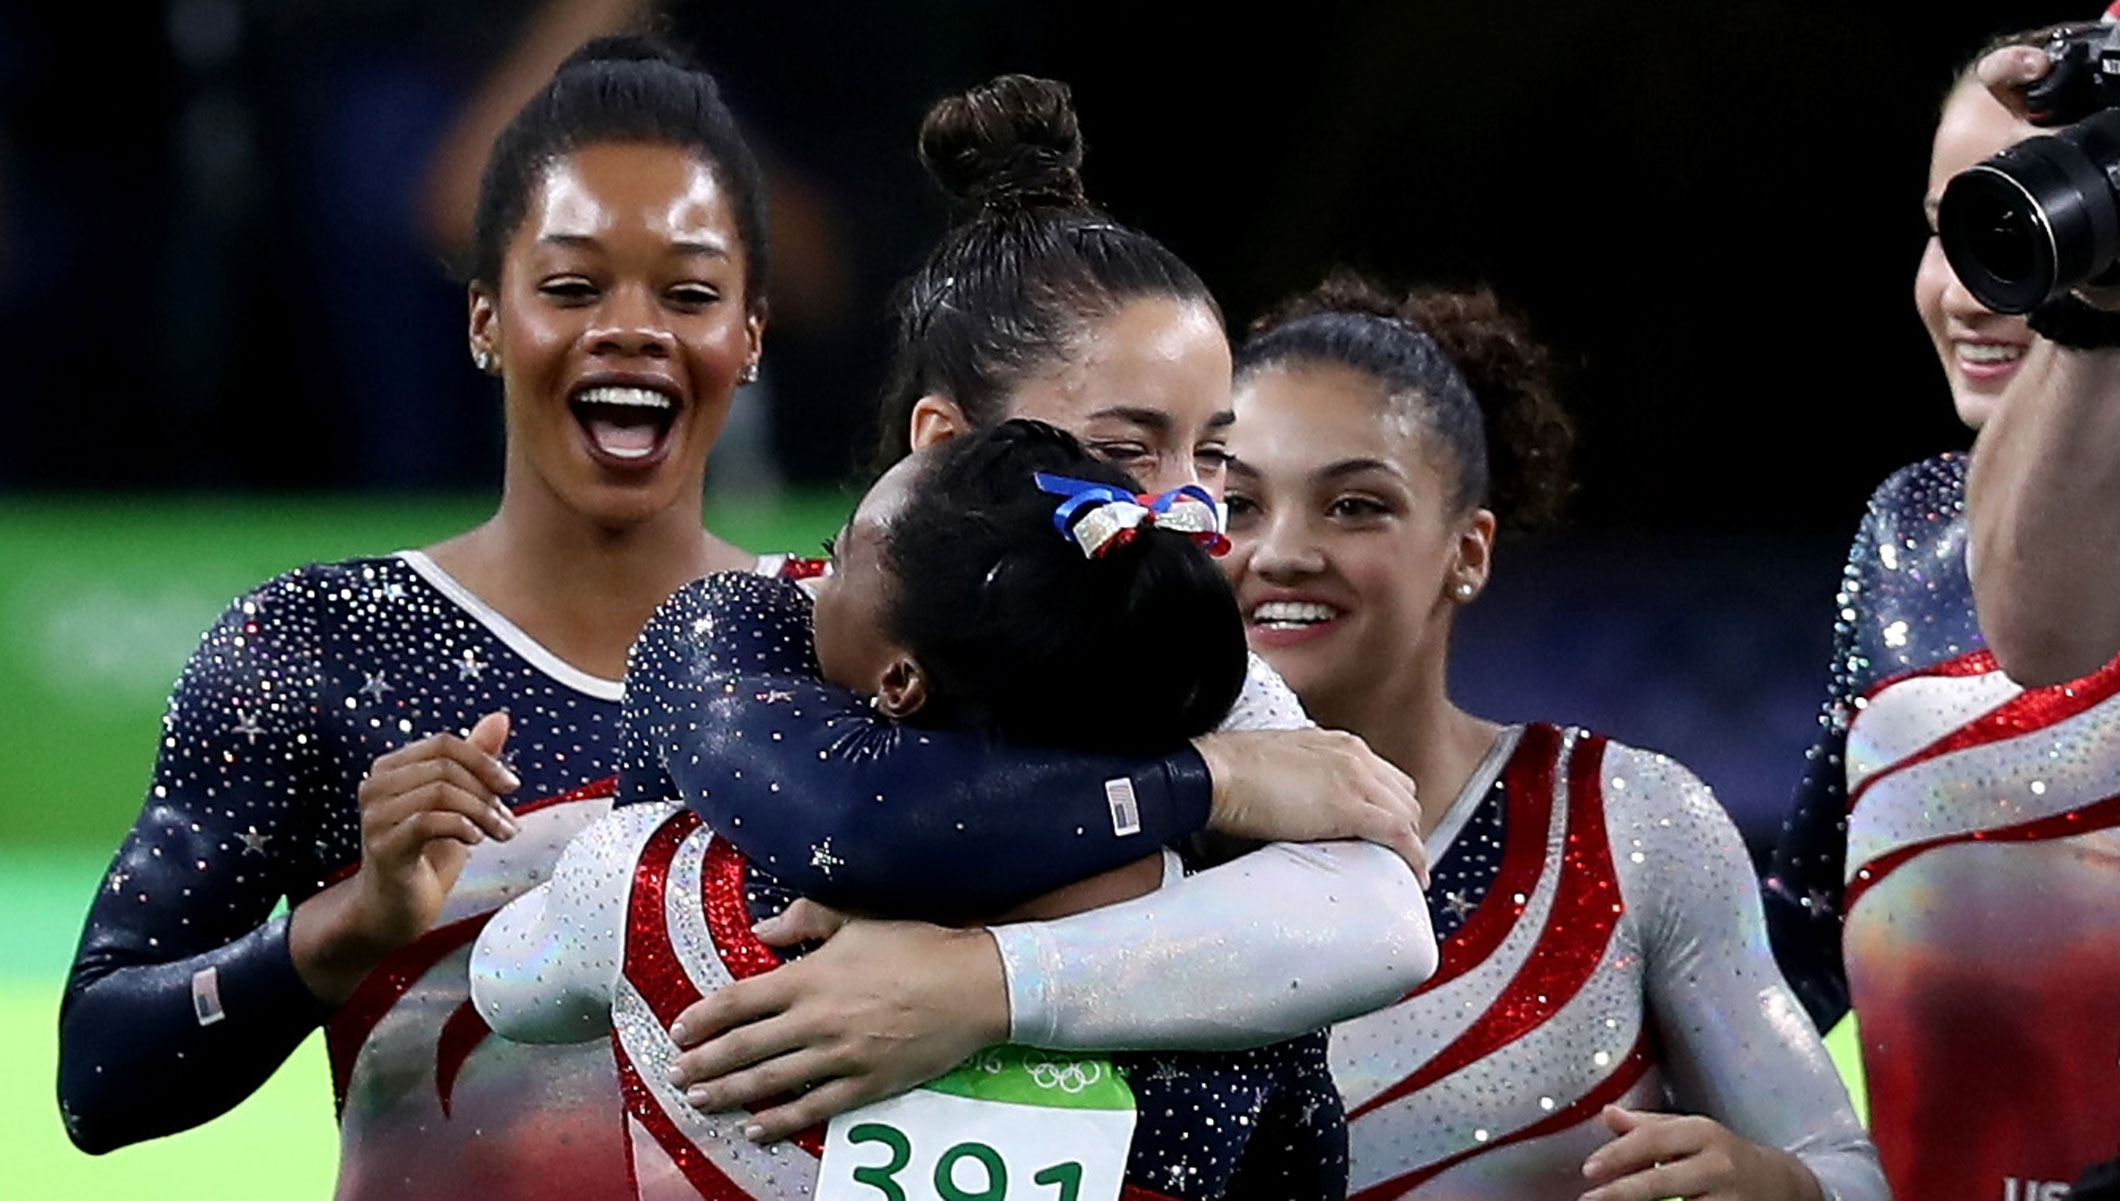 Simone Biles (front) of the United States is congratulated by her team mates after competing on the floor during the Artistic Gymnastics Women's Team Final on Day 4 of the Rio 2016 Olympic Games at the Rio Olympic Arena on August 9, 2016 in Rio de Janeiro, Brazil.